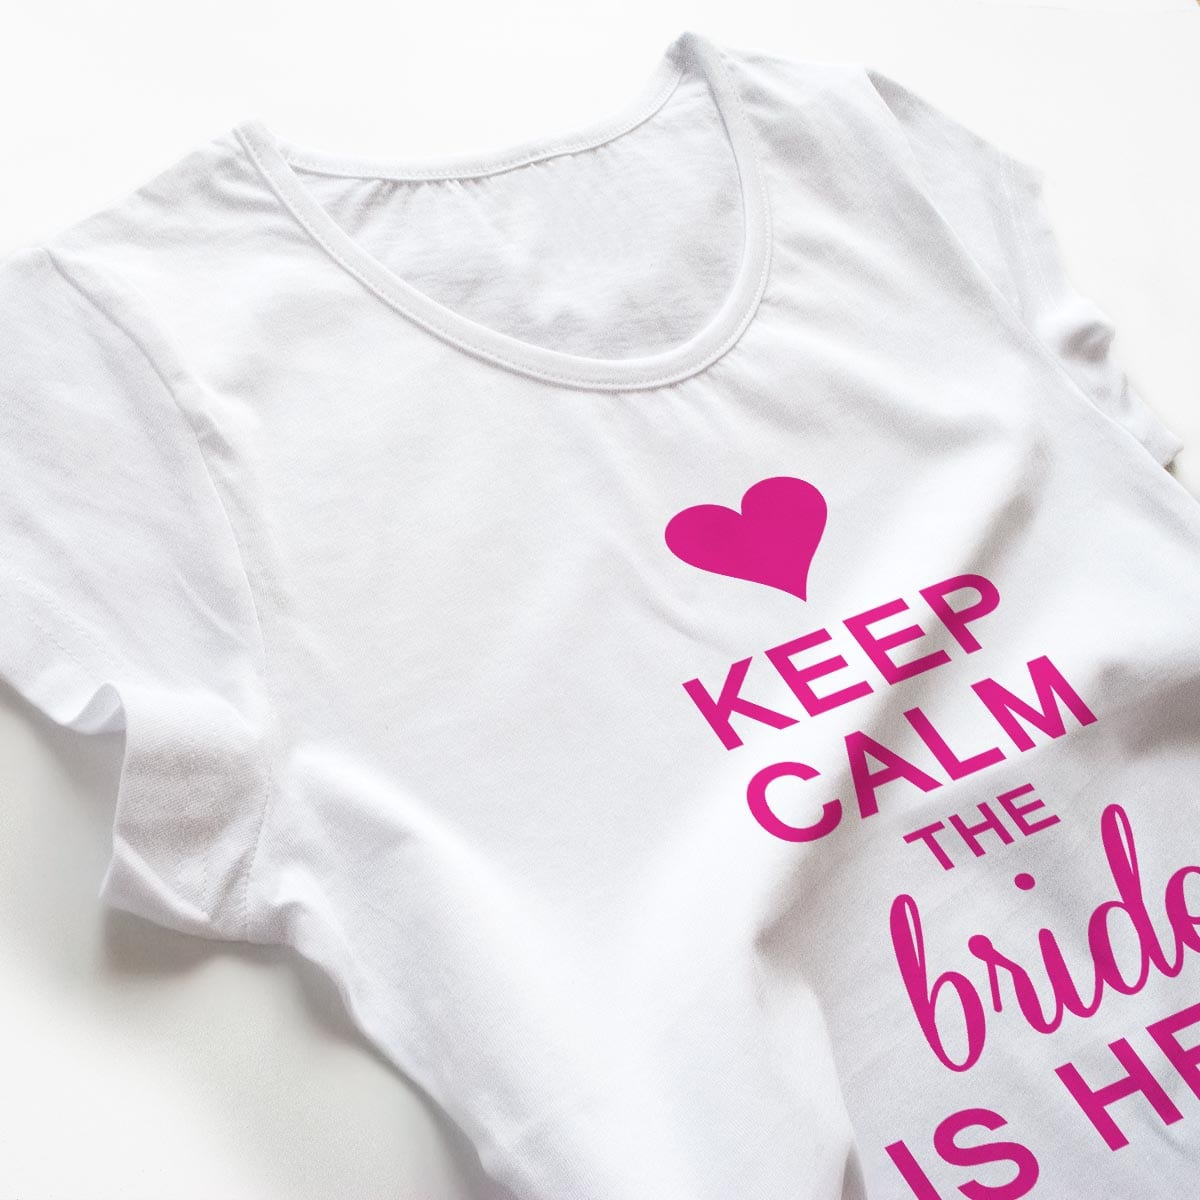 Tricouri petrecerea burlacitelor Keep calm - The Bride is here 3